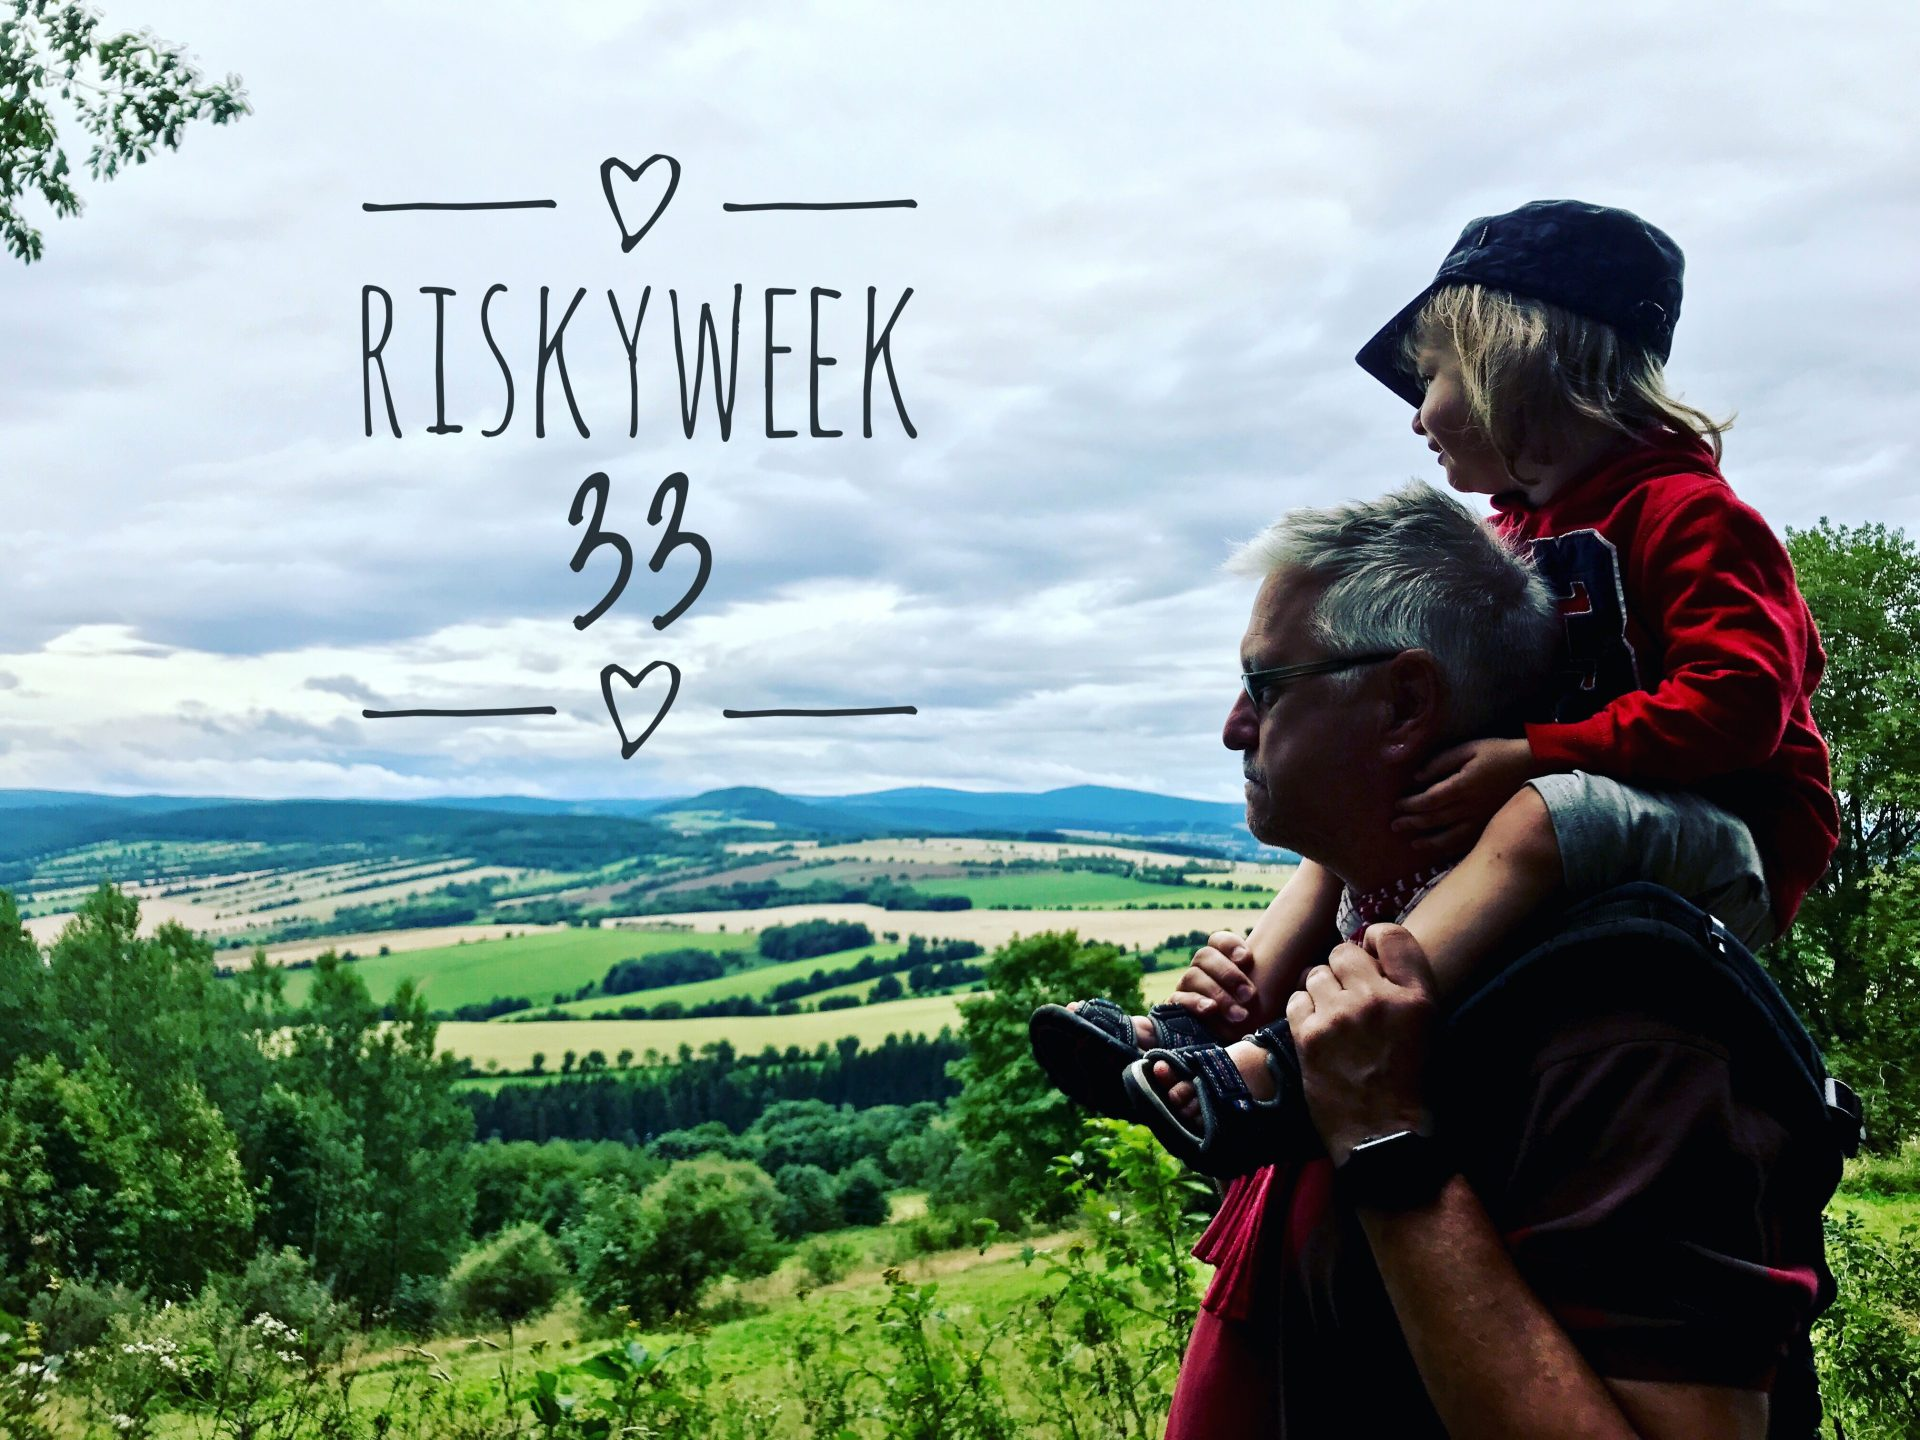 Risky Week reloaded